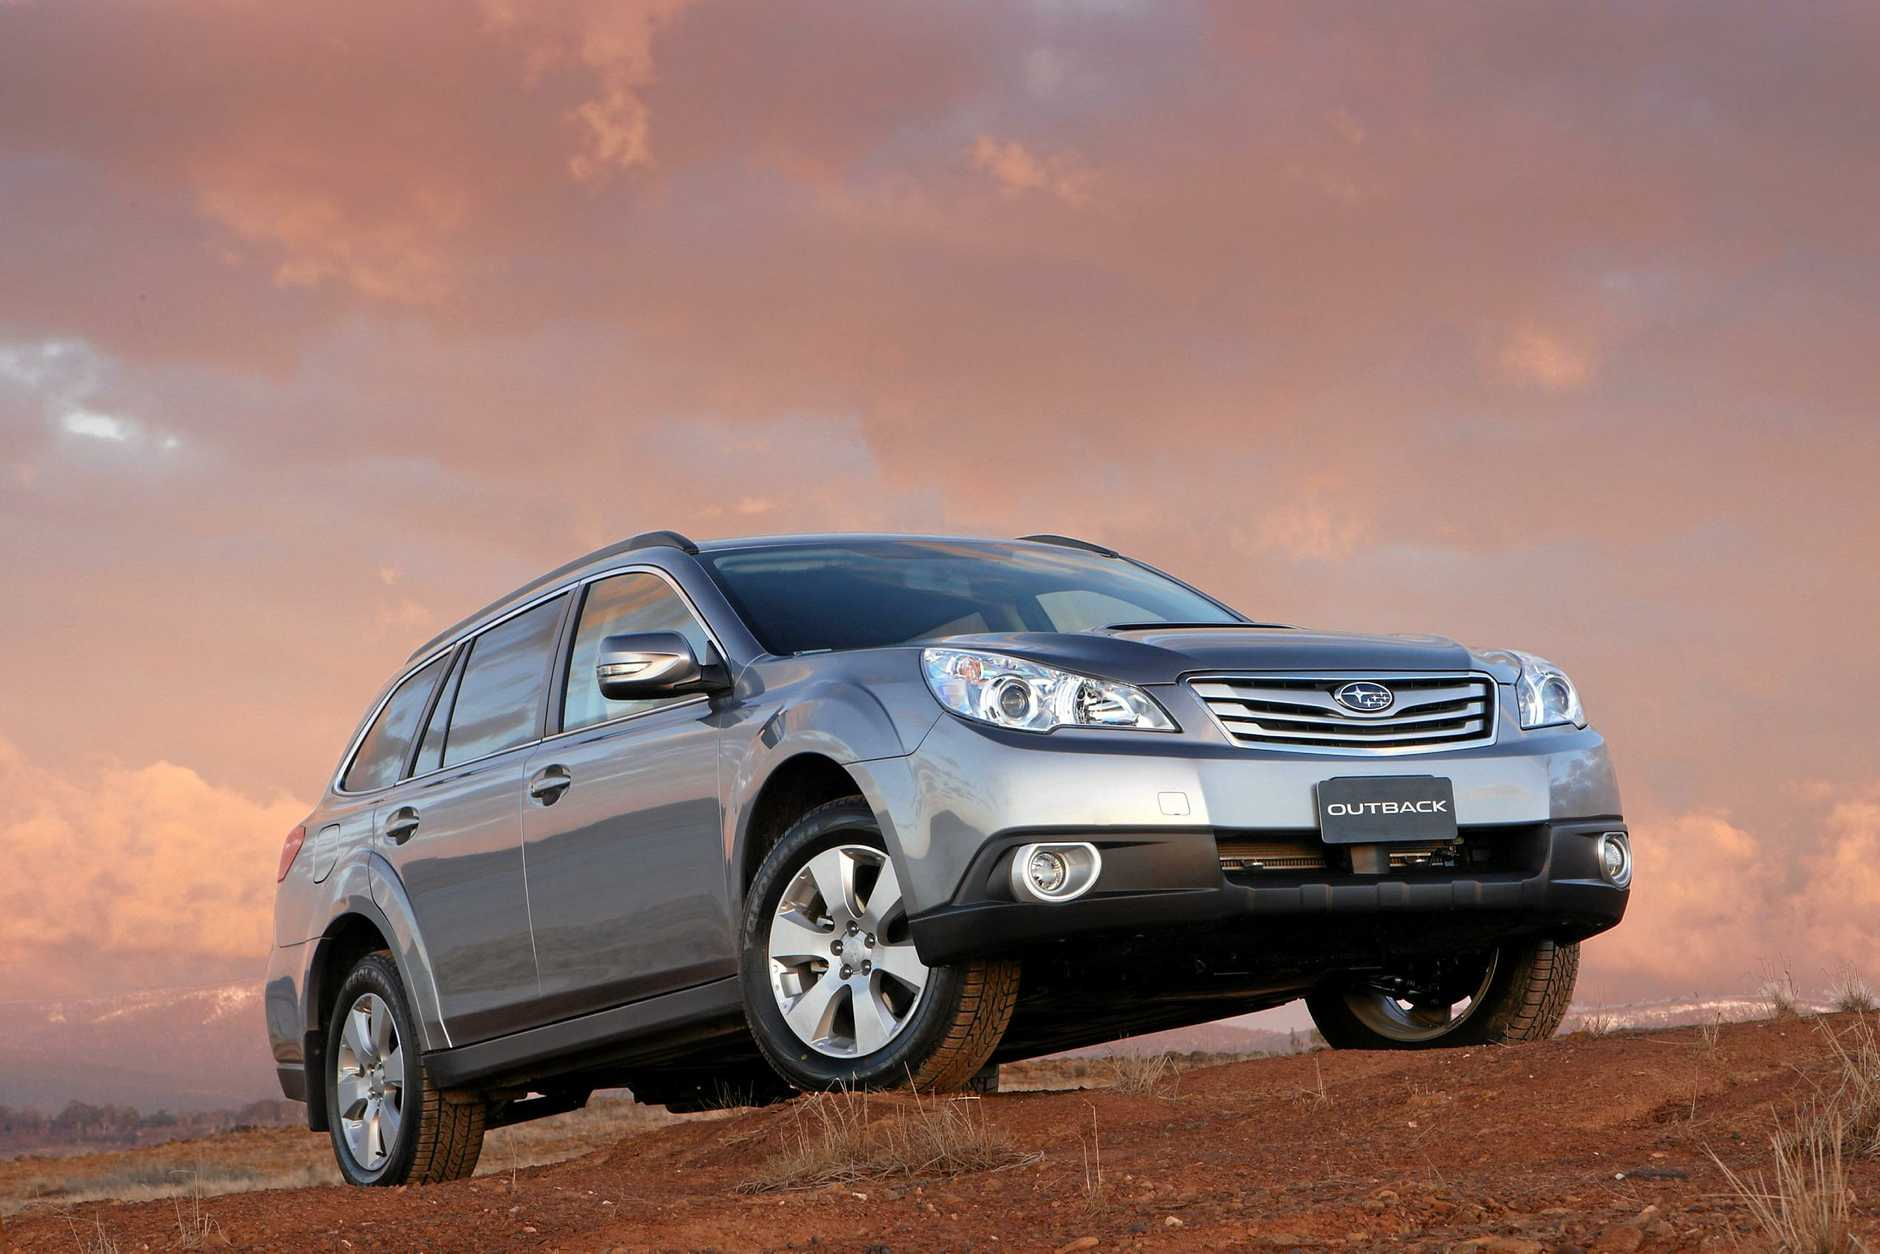 The 2010 Subaru Outback remains a good buy.